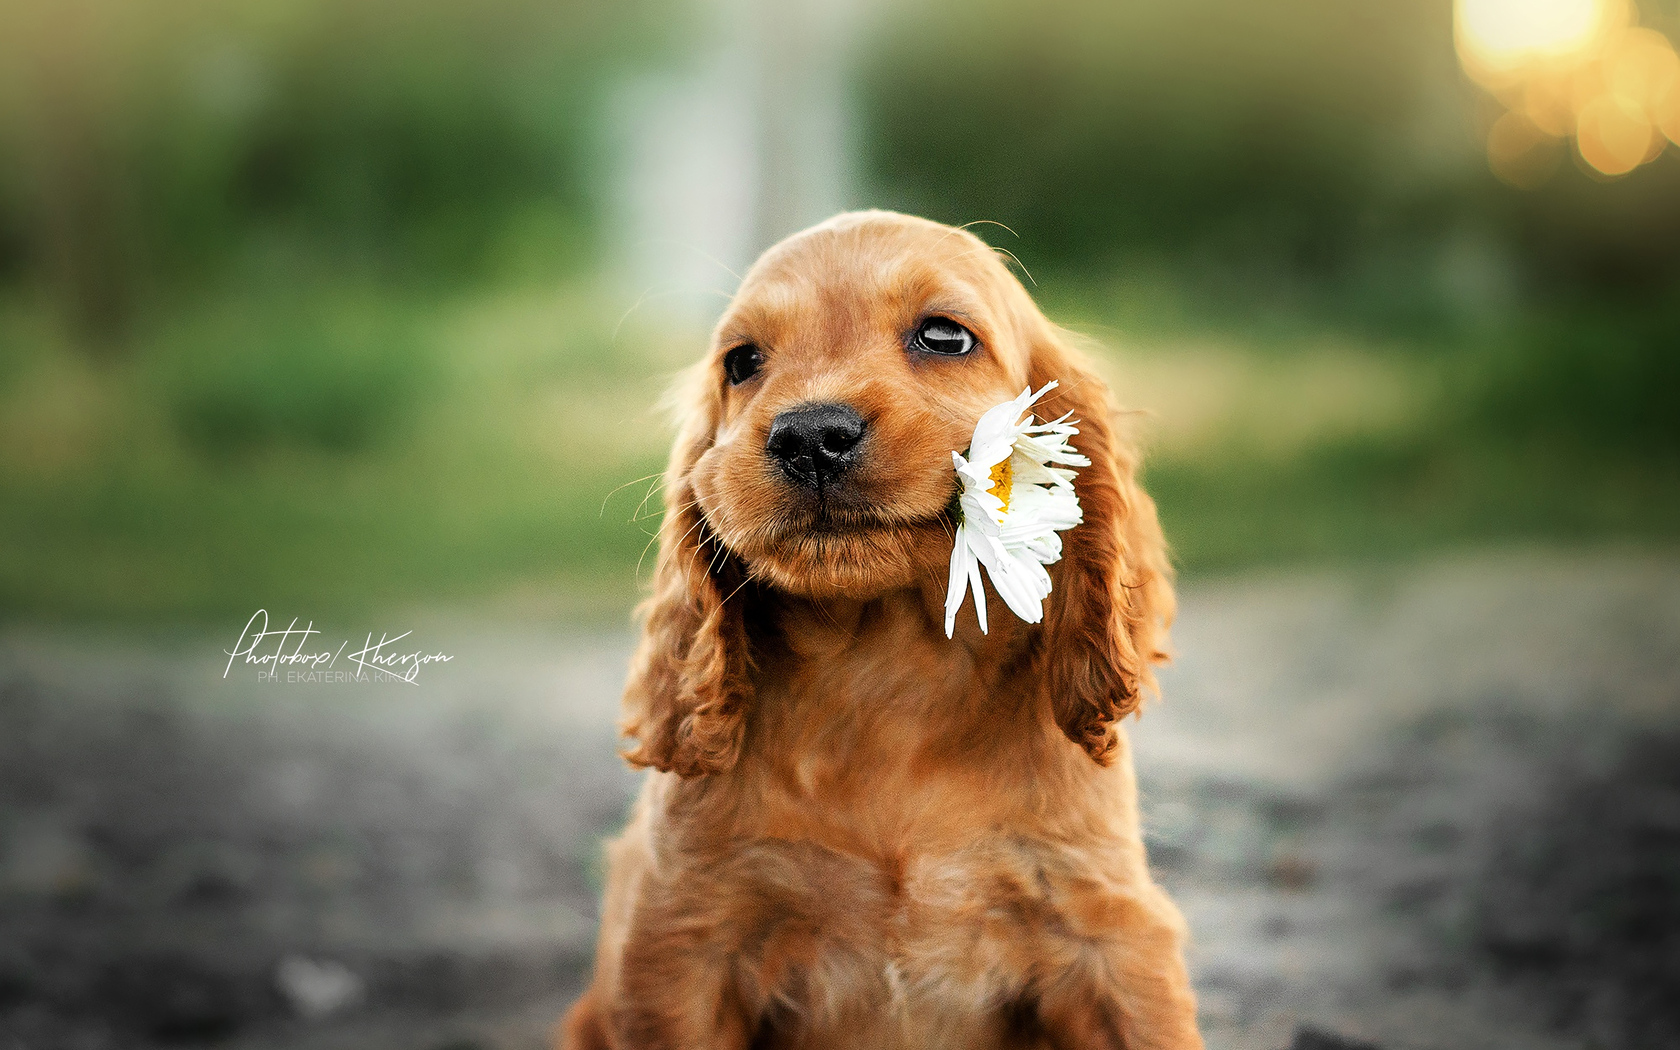 dog-with-flower-in-mouth-sz.jpg